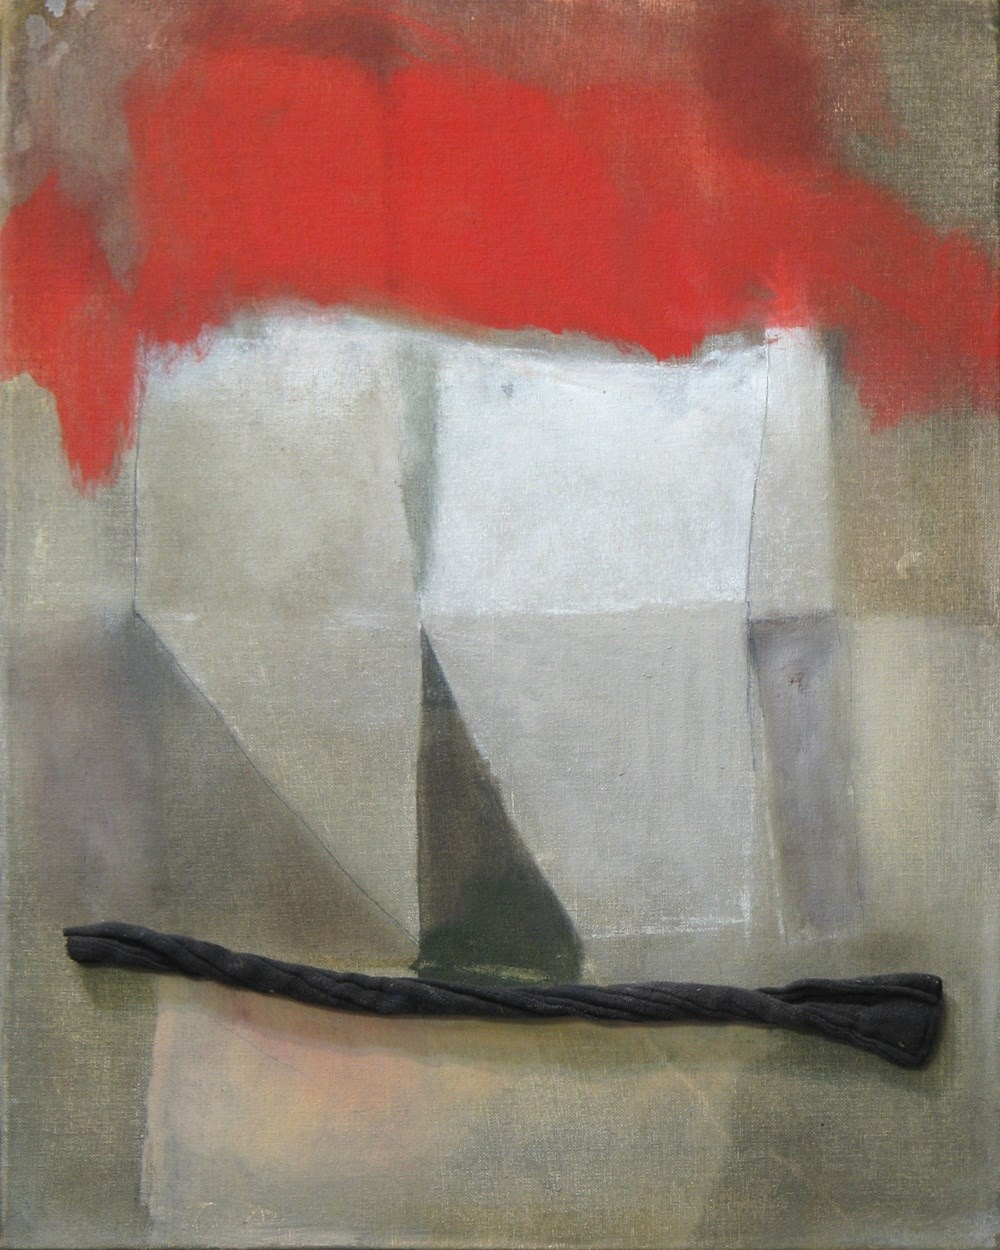 Origami structures, original Abstract Canvas Painting by Álvaro Marzán